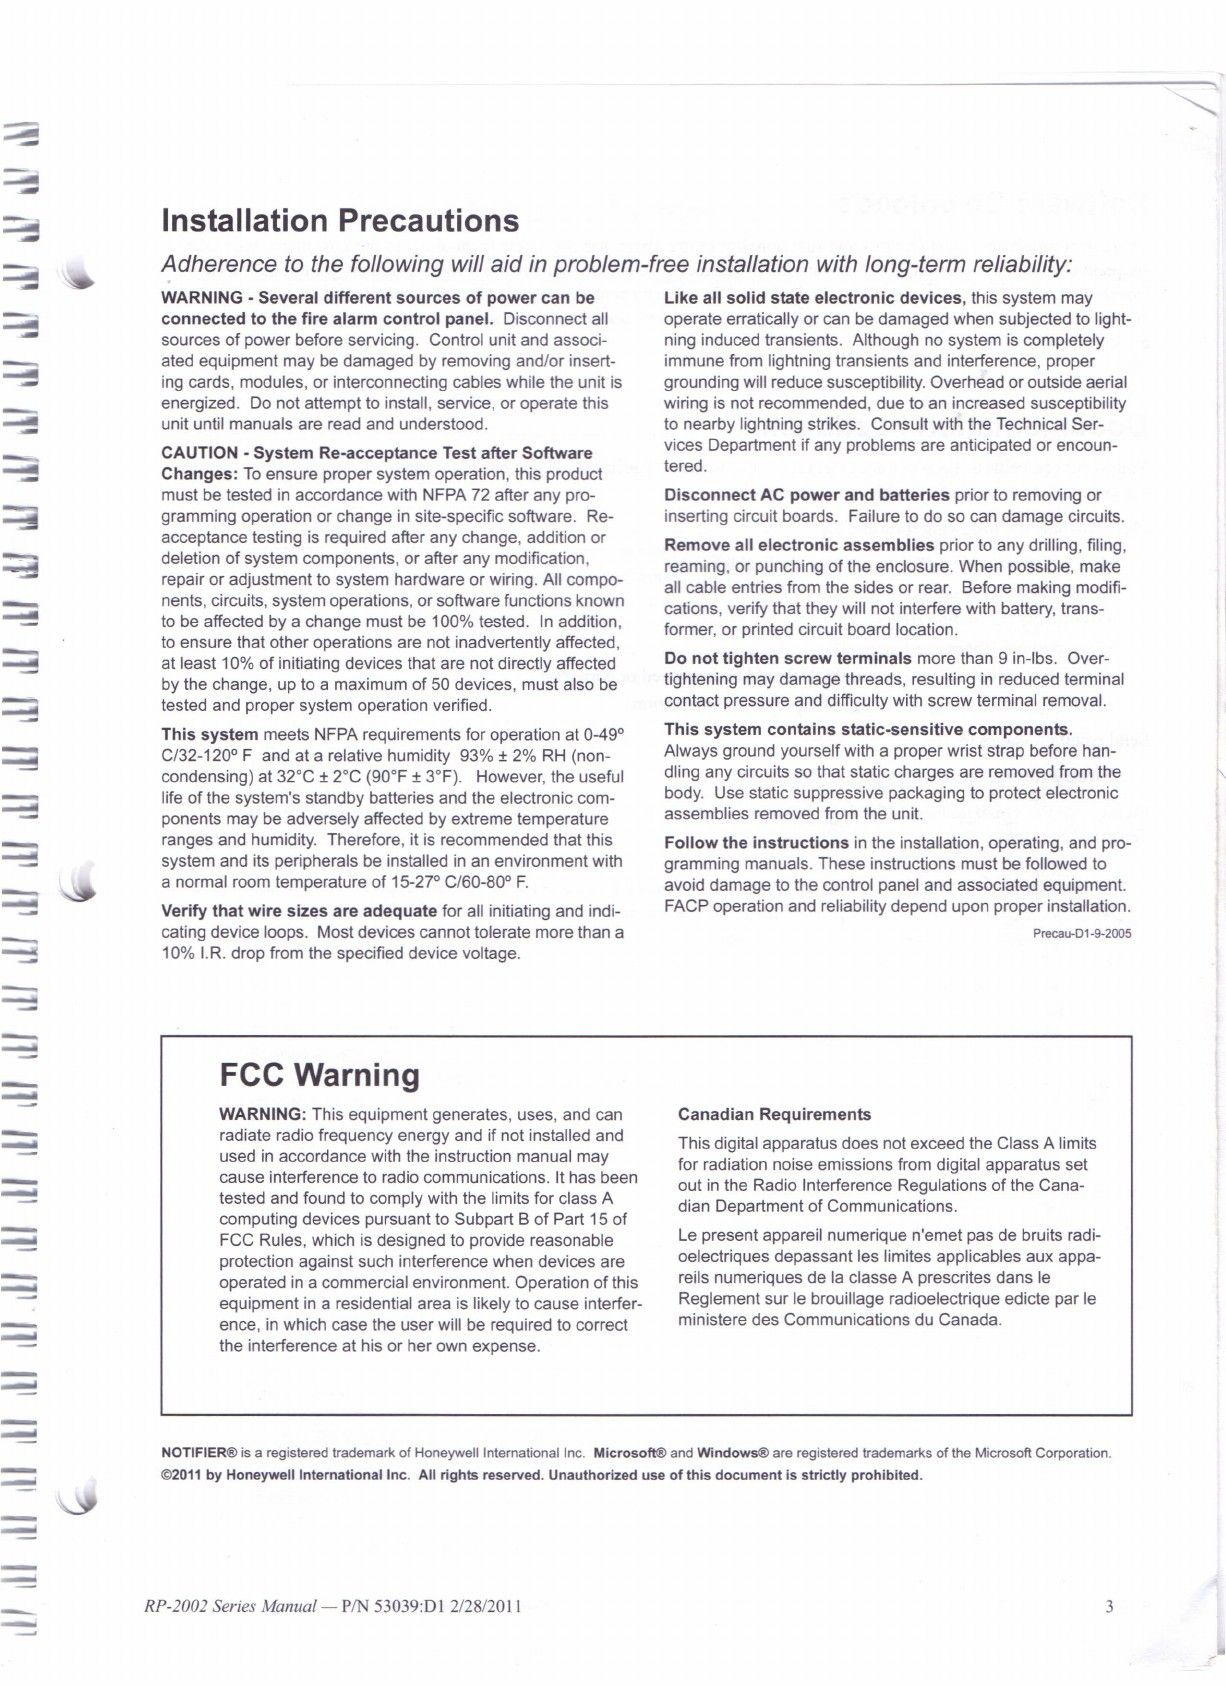 New Class A Wiring Diagram In Fire Alarm System Diagram Diagramtemplate Diagramsample